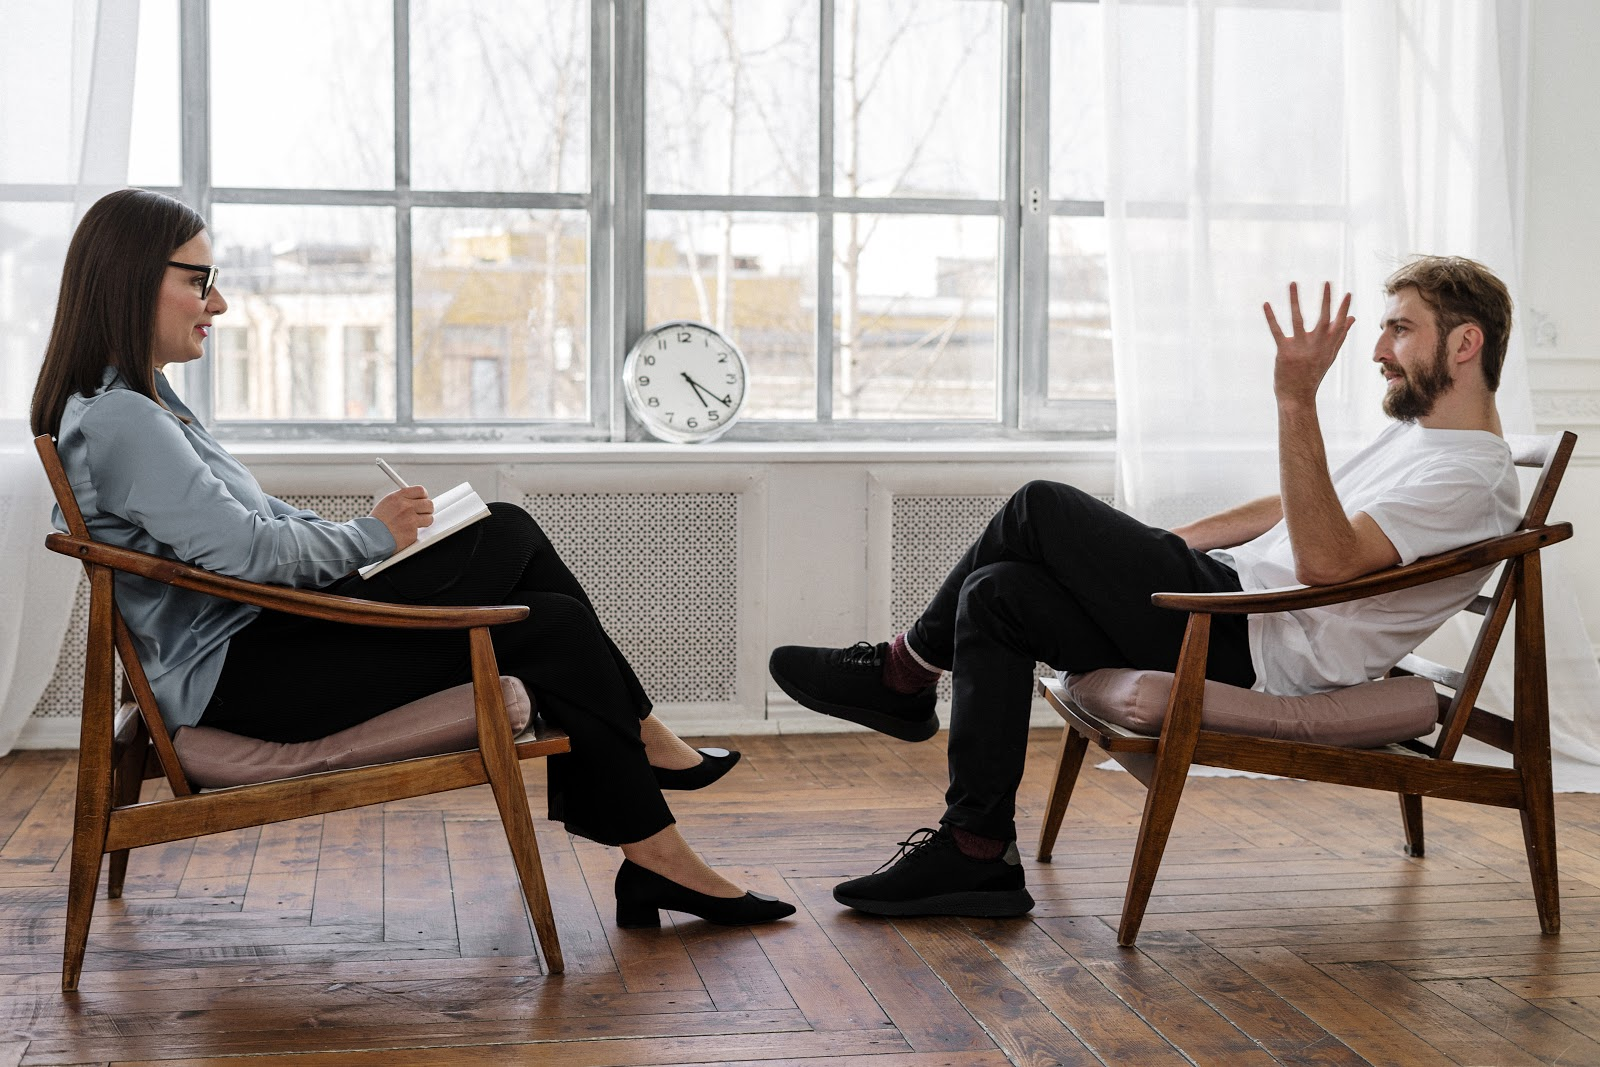 A man meets and discuss with the professional counsellor to cope with anxiety